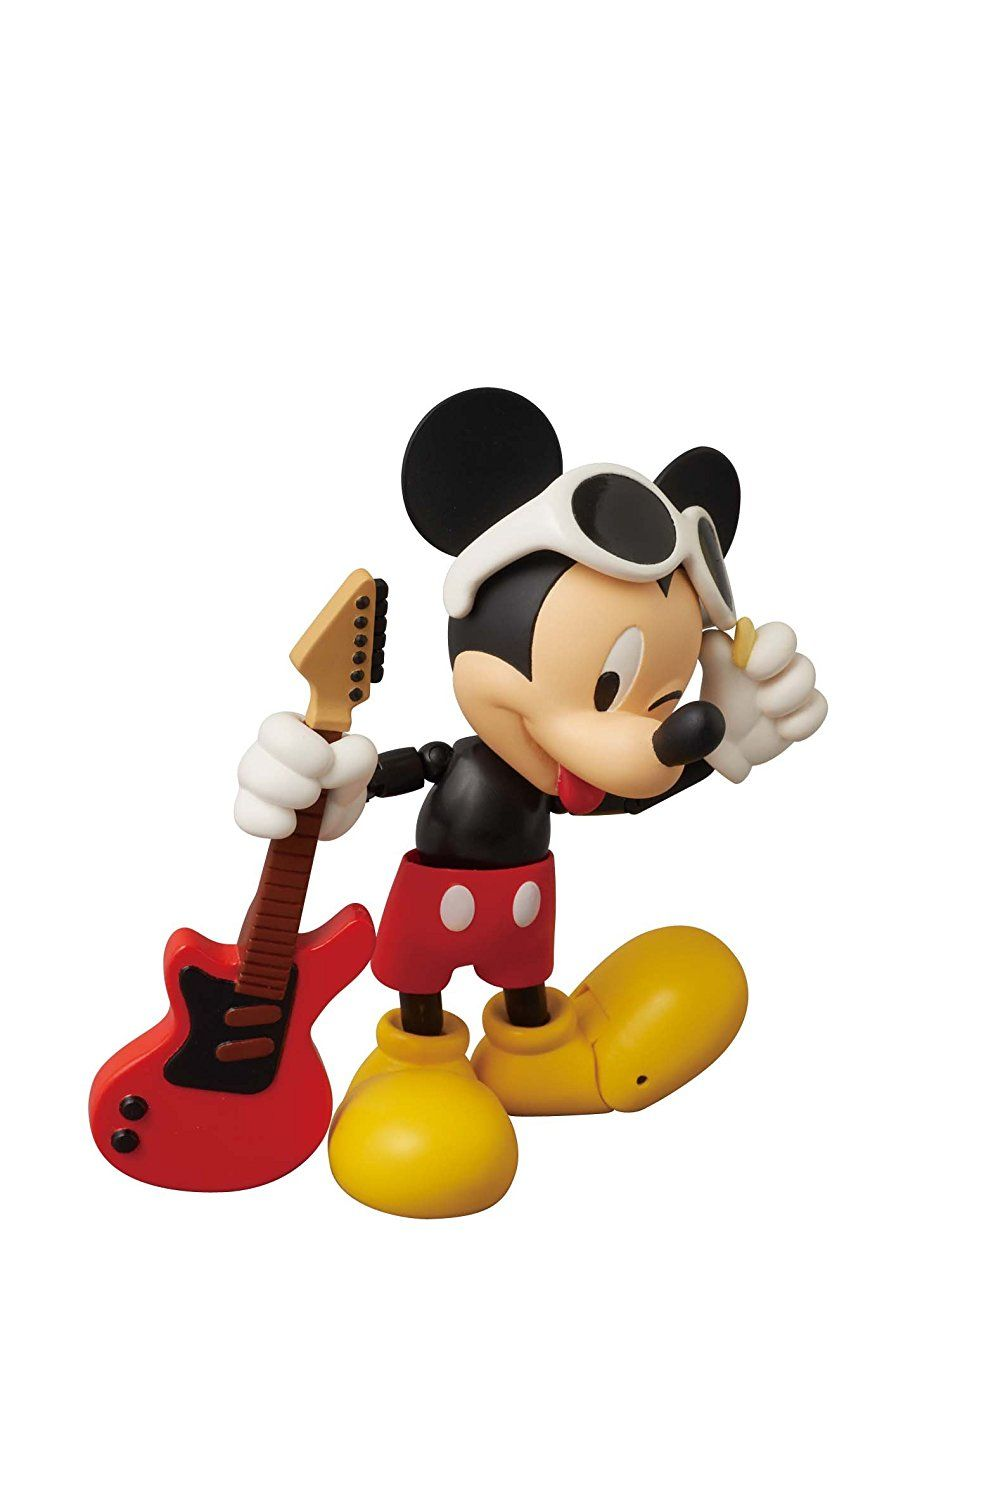 Amazon.com: Medicom Disney x Roen Mickey Mouse Miracle Action Figure (Grunge Rock Version): Toys & Games